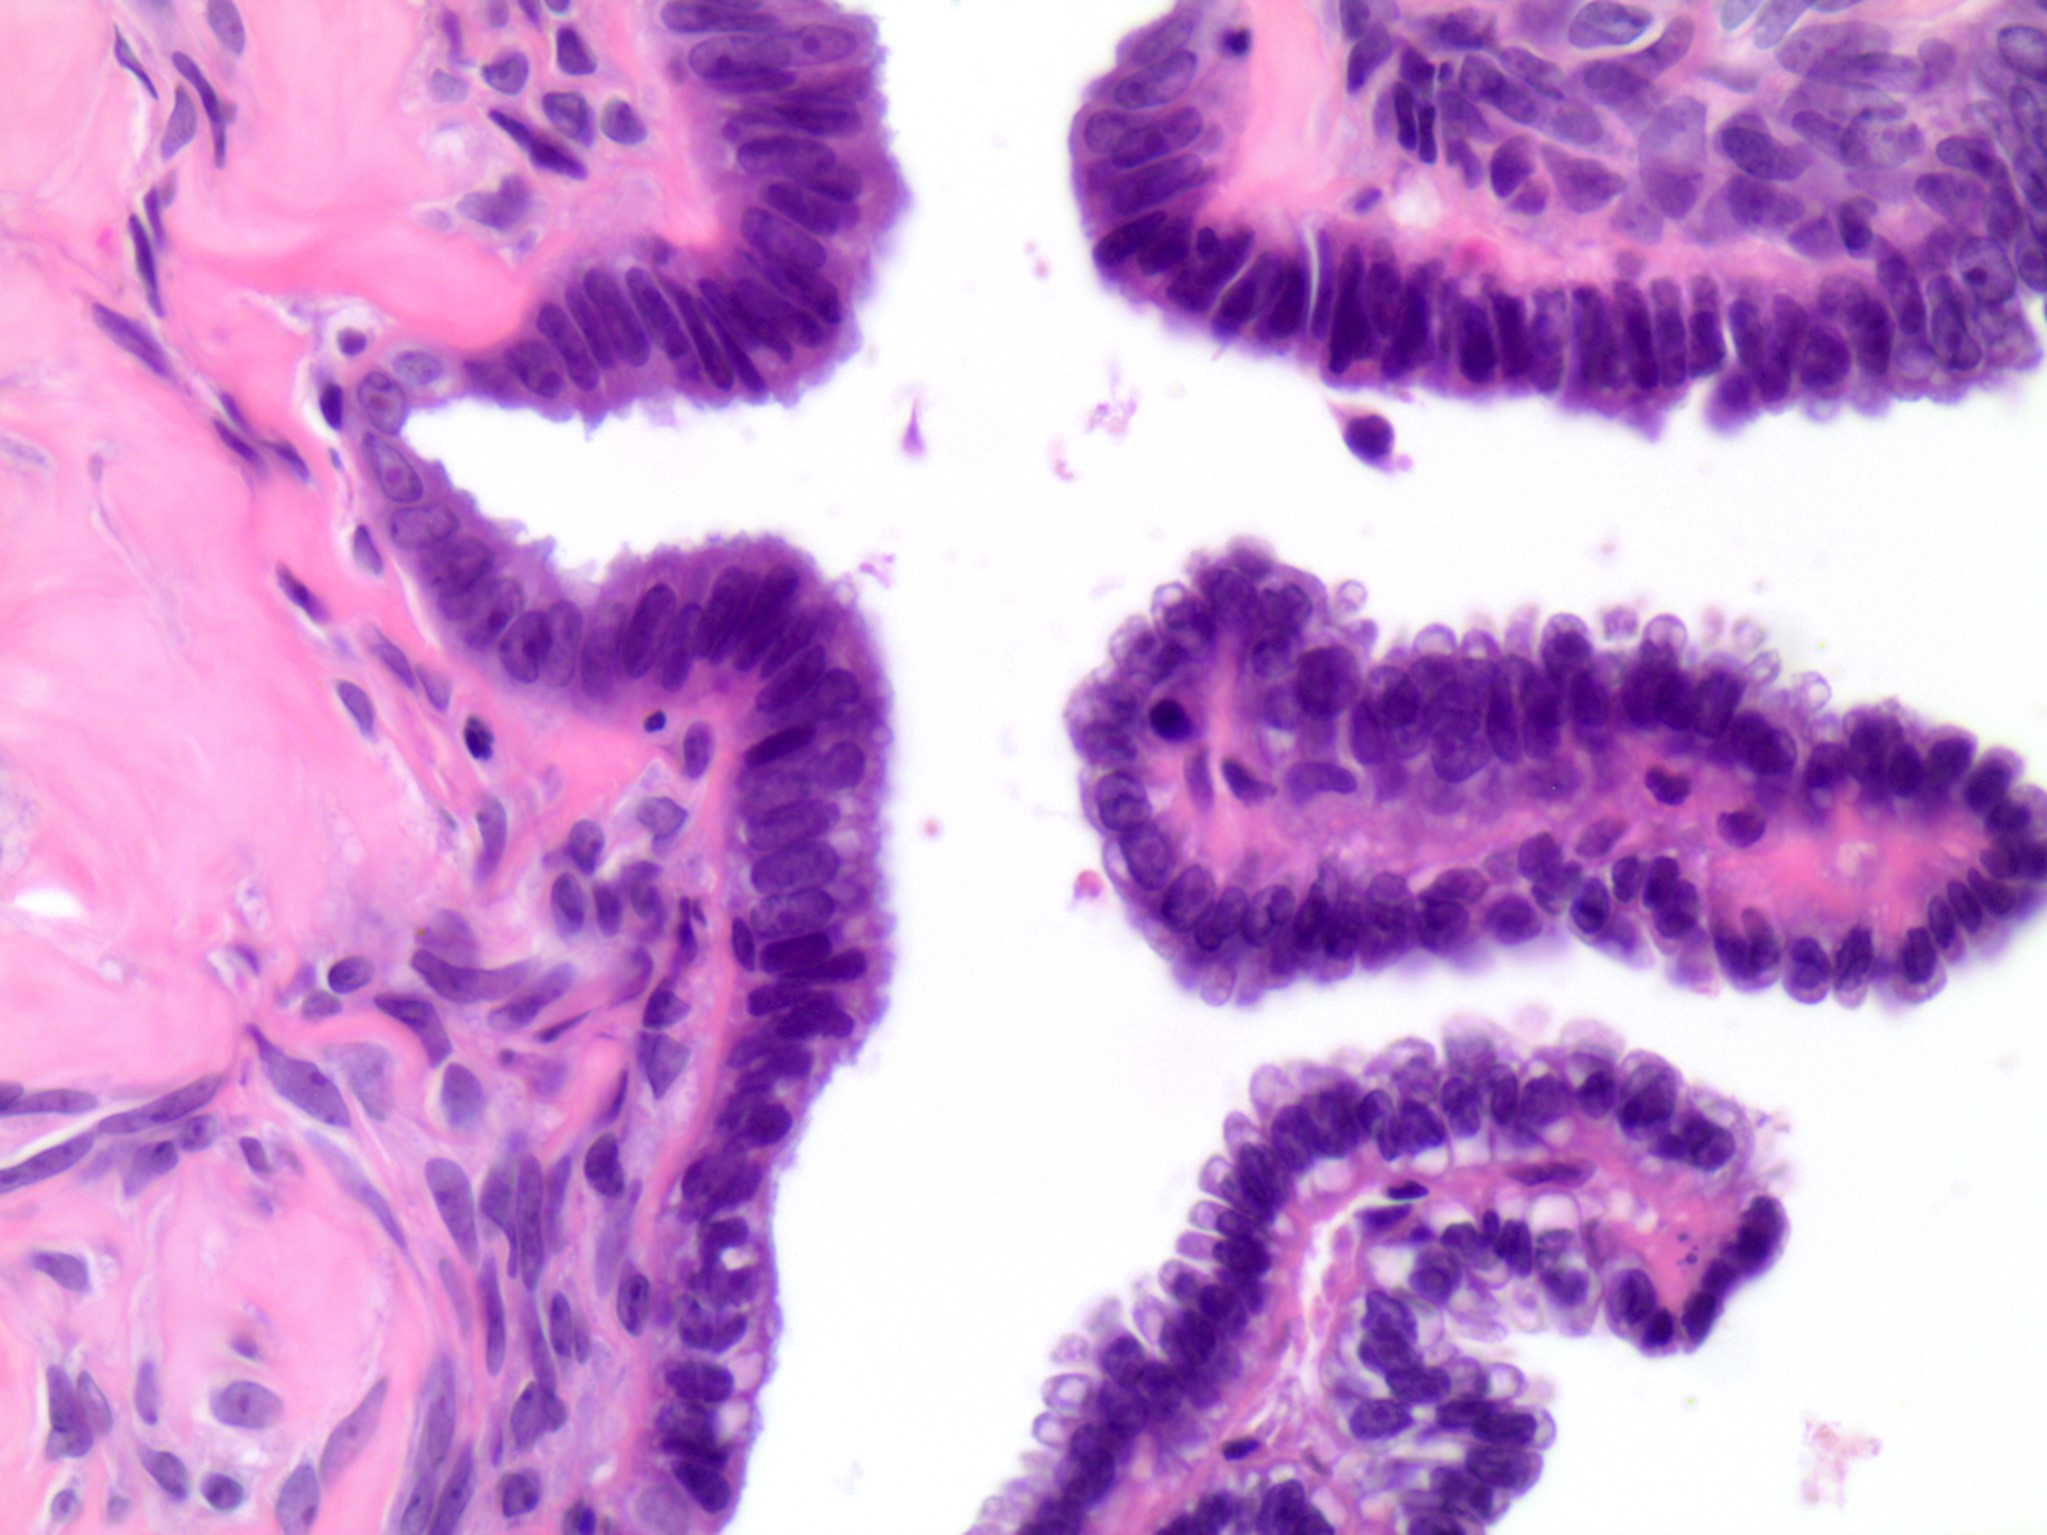 Cytologic features